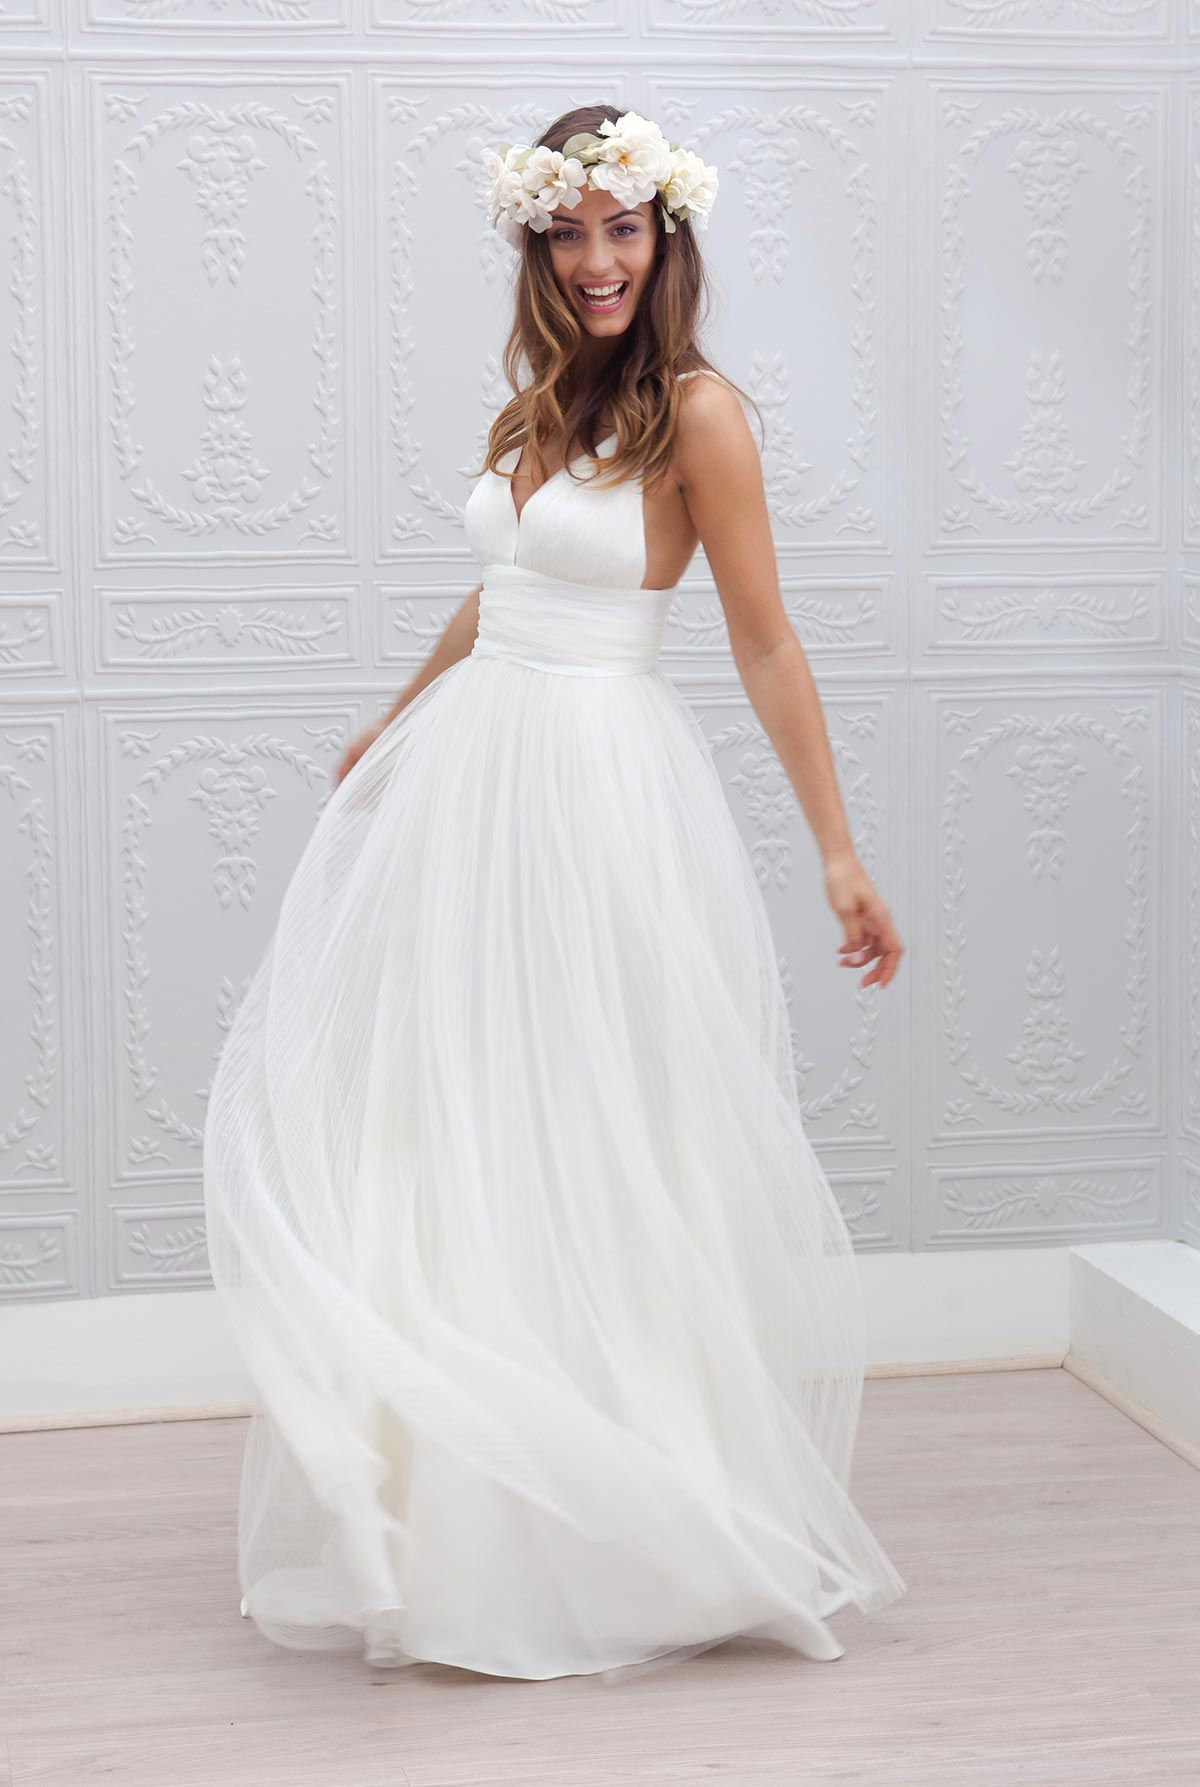 Marie laporte collection wedding dress wedding and weddings